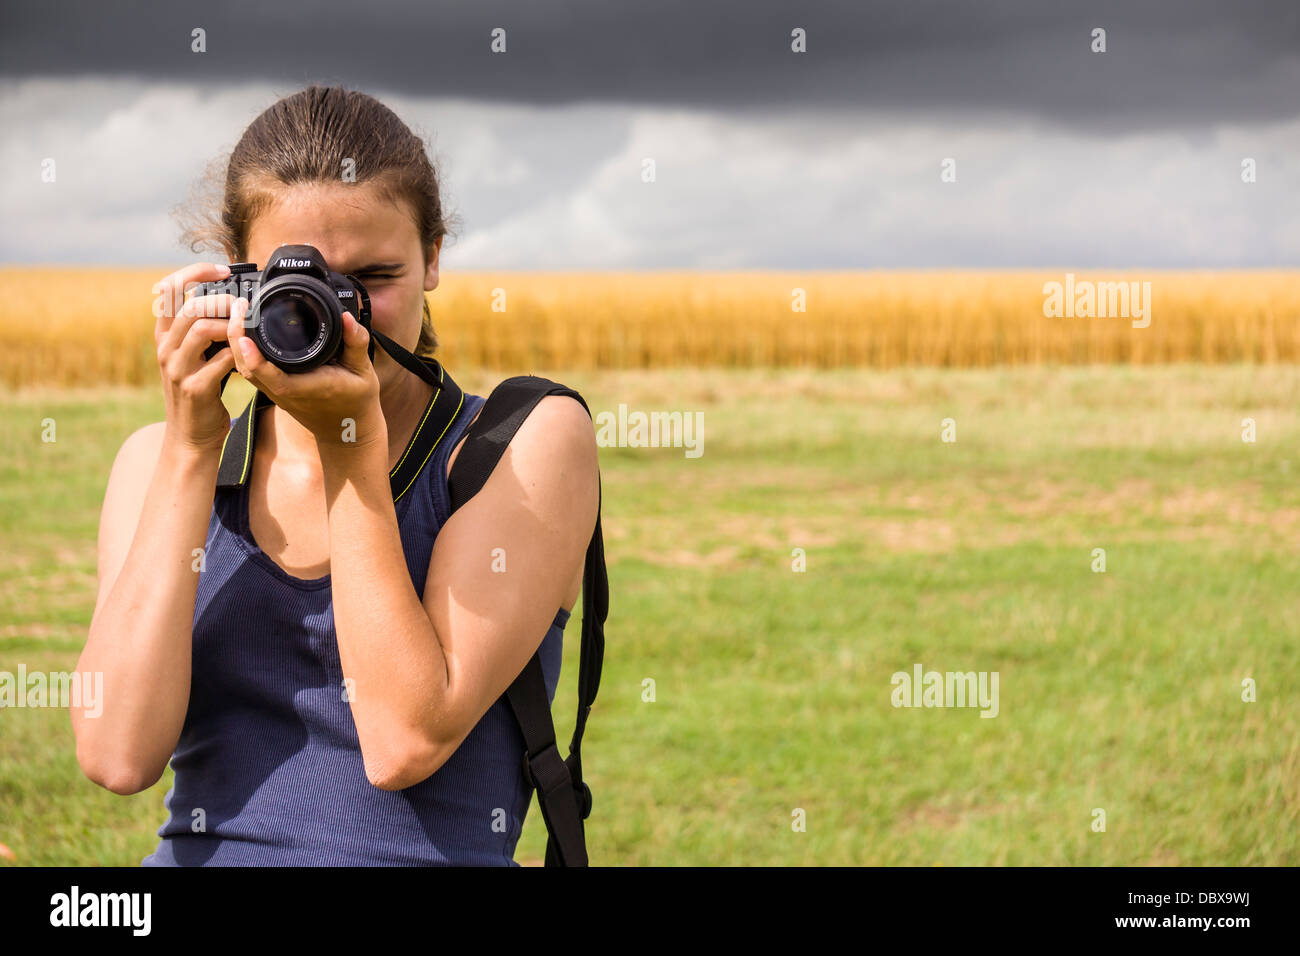 A young girl takes a photograph using a DSLR. - Stock Image